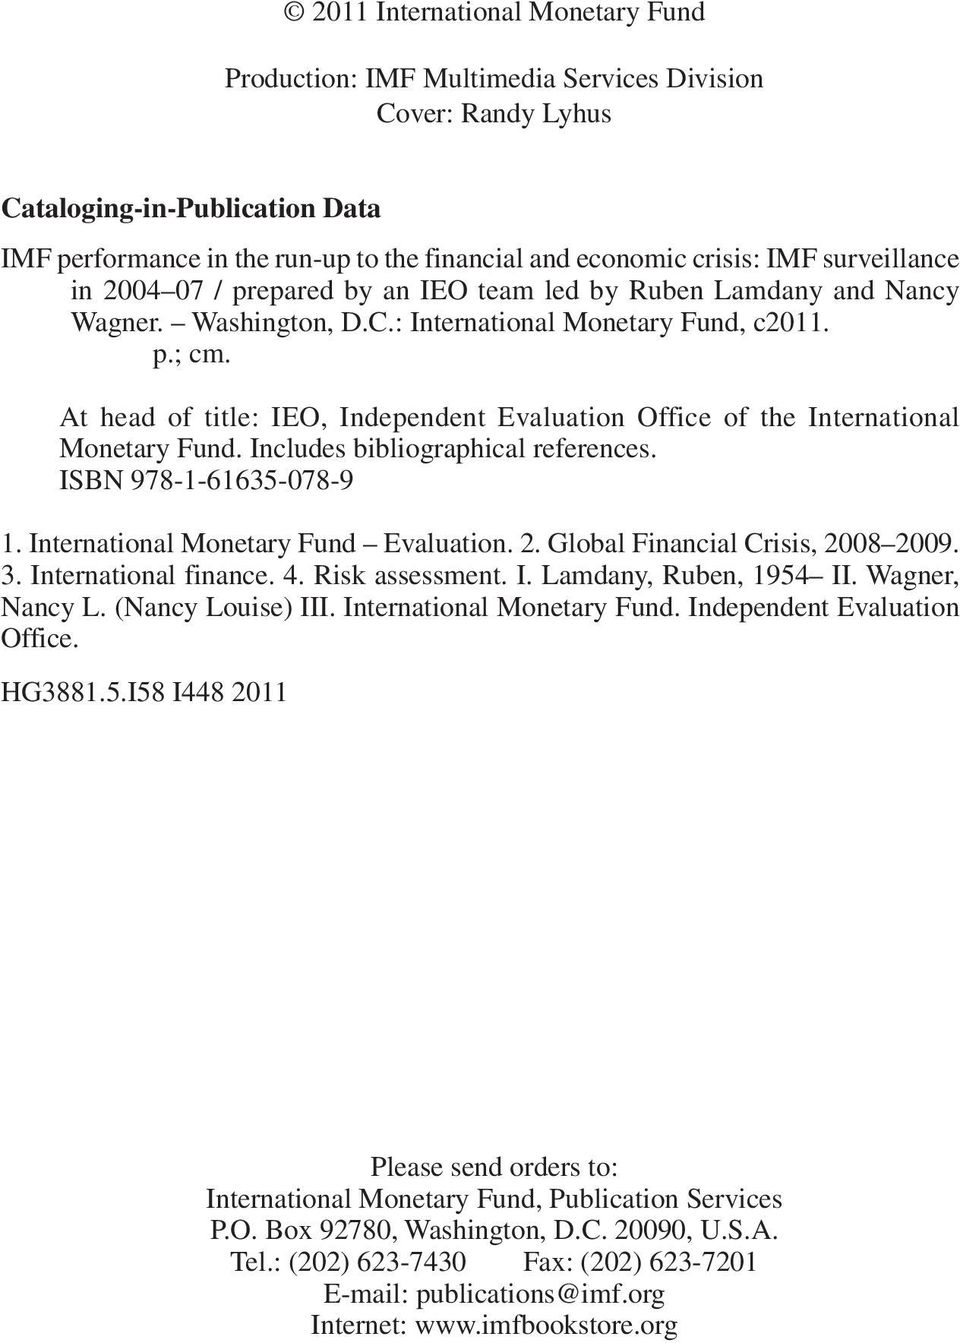 At head of title: IEO, Independent Evaluation Office of the International Monetary Fund. Includes bibliographical references. ISBN 978-1-61635-078-9 1. International Monetary Fund Evaluation. 2.